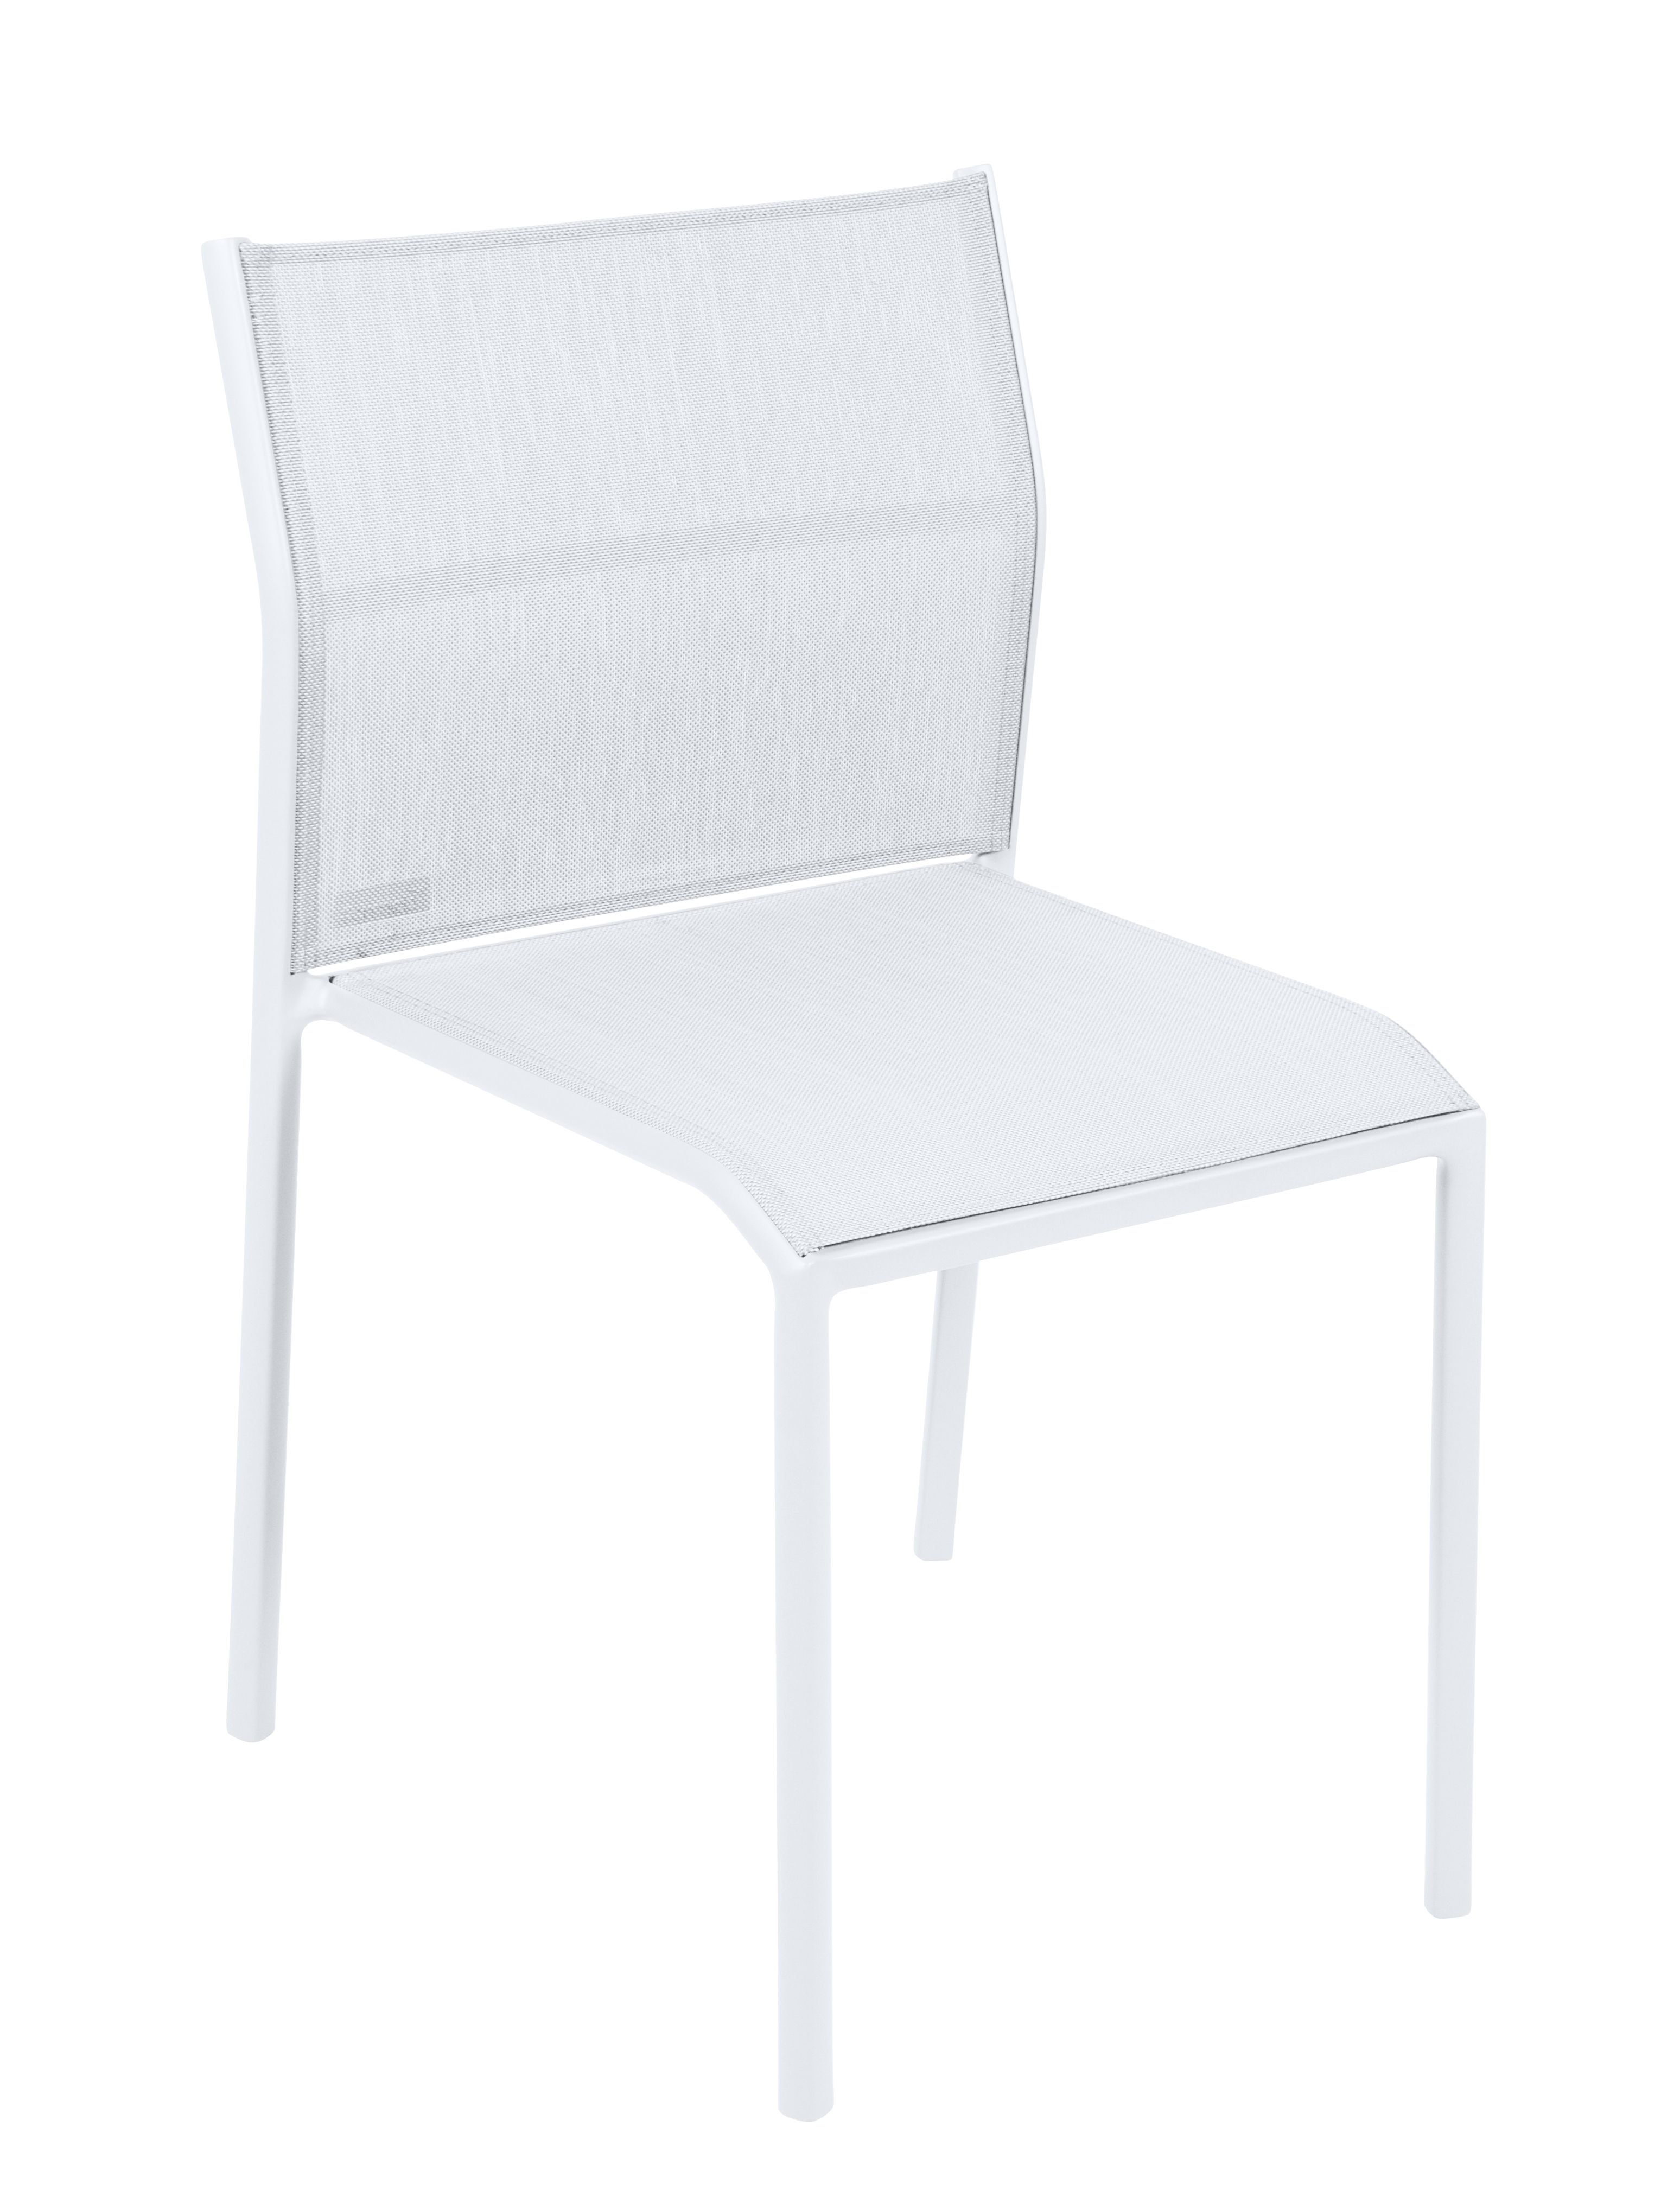 Furniture - Chairs - Cadiz Stacking chair - / Cloth by Fermob - Cotton white - Batyline® fabric, Lacquered aluminium